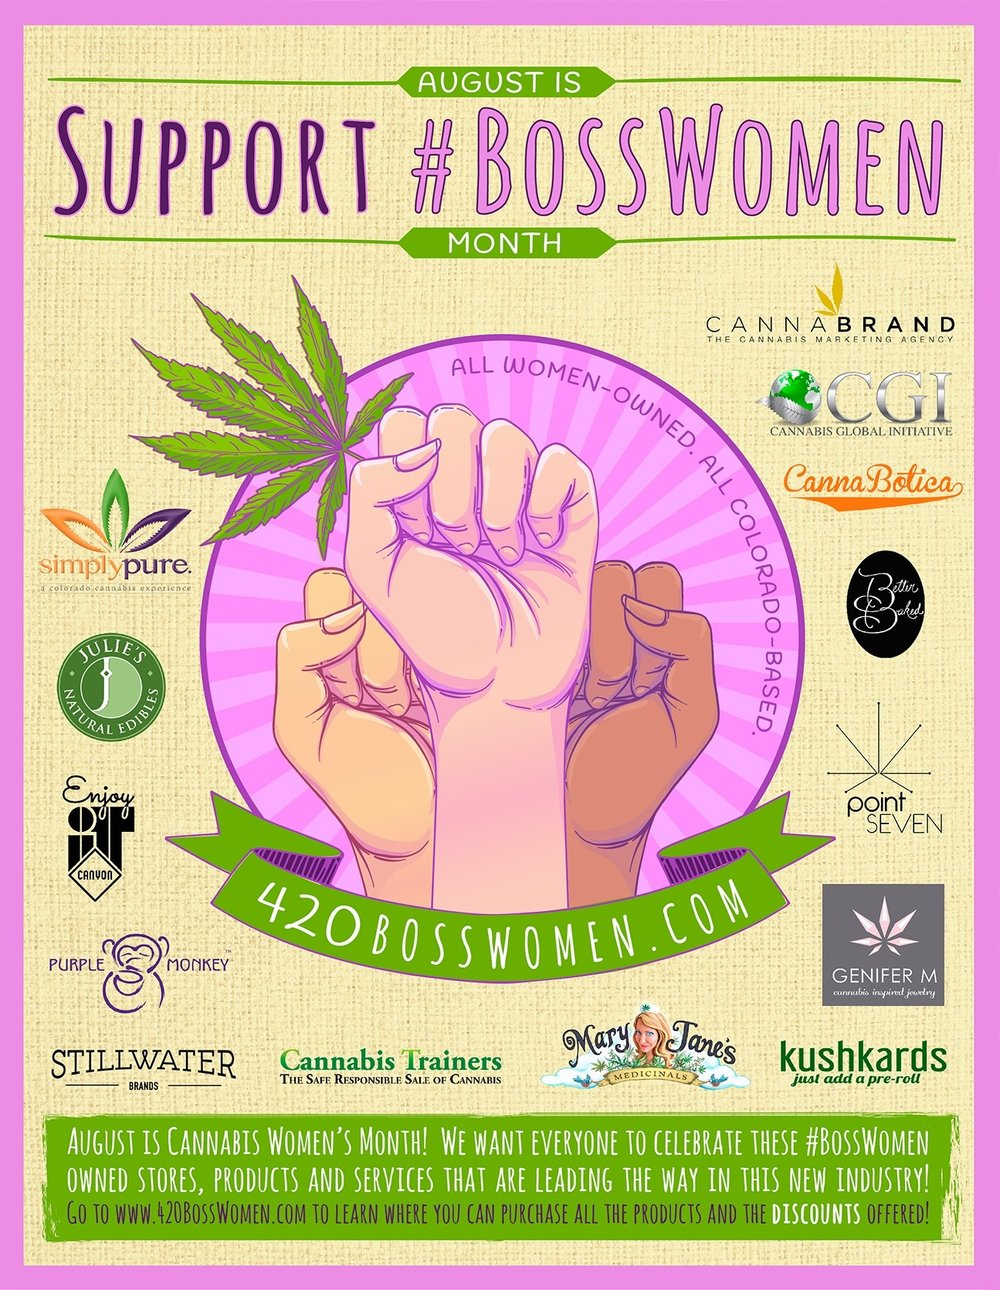 Boss Women -GENIFER M JEWELRY- CANNABIS INSPIRED JEWELRY - DIAMOND CANNABIS PENDANTS